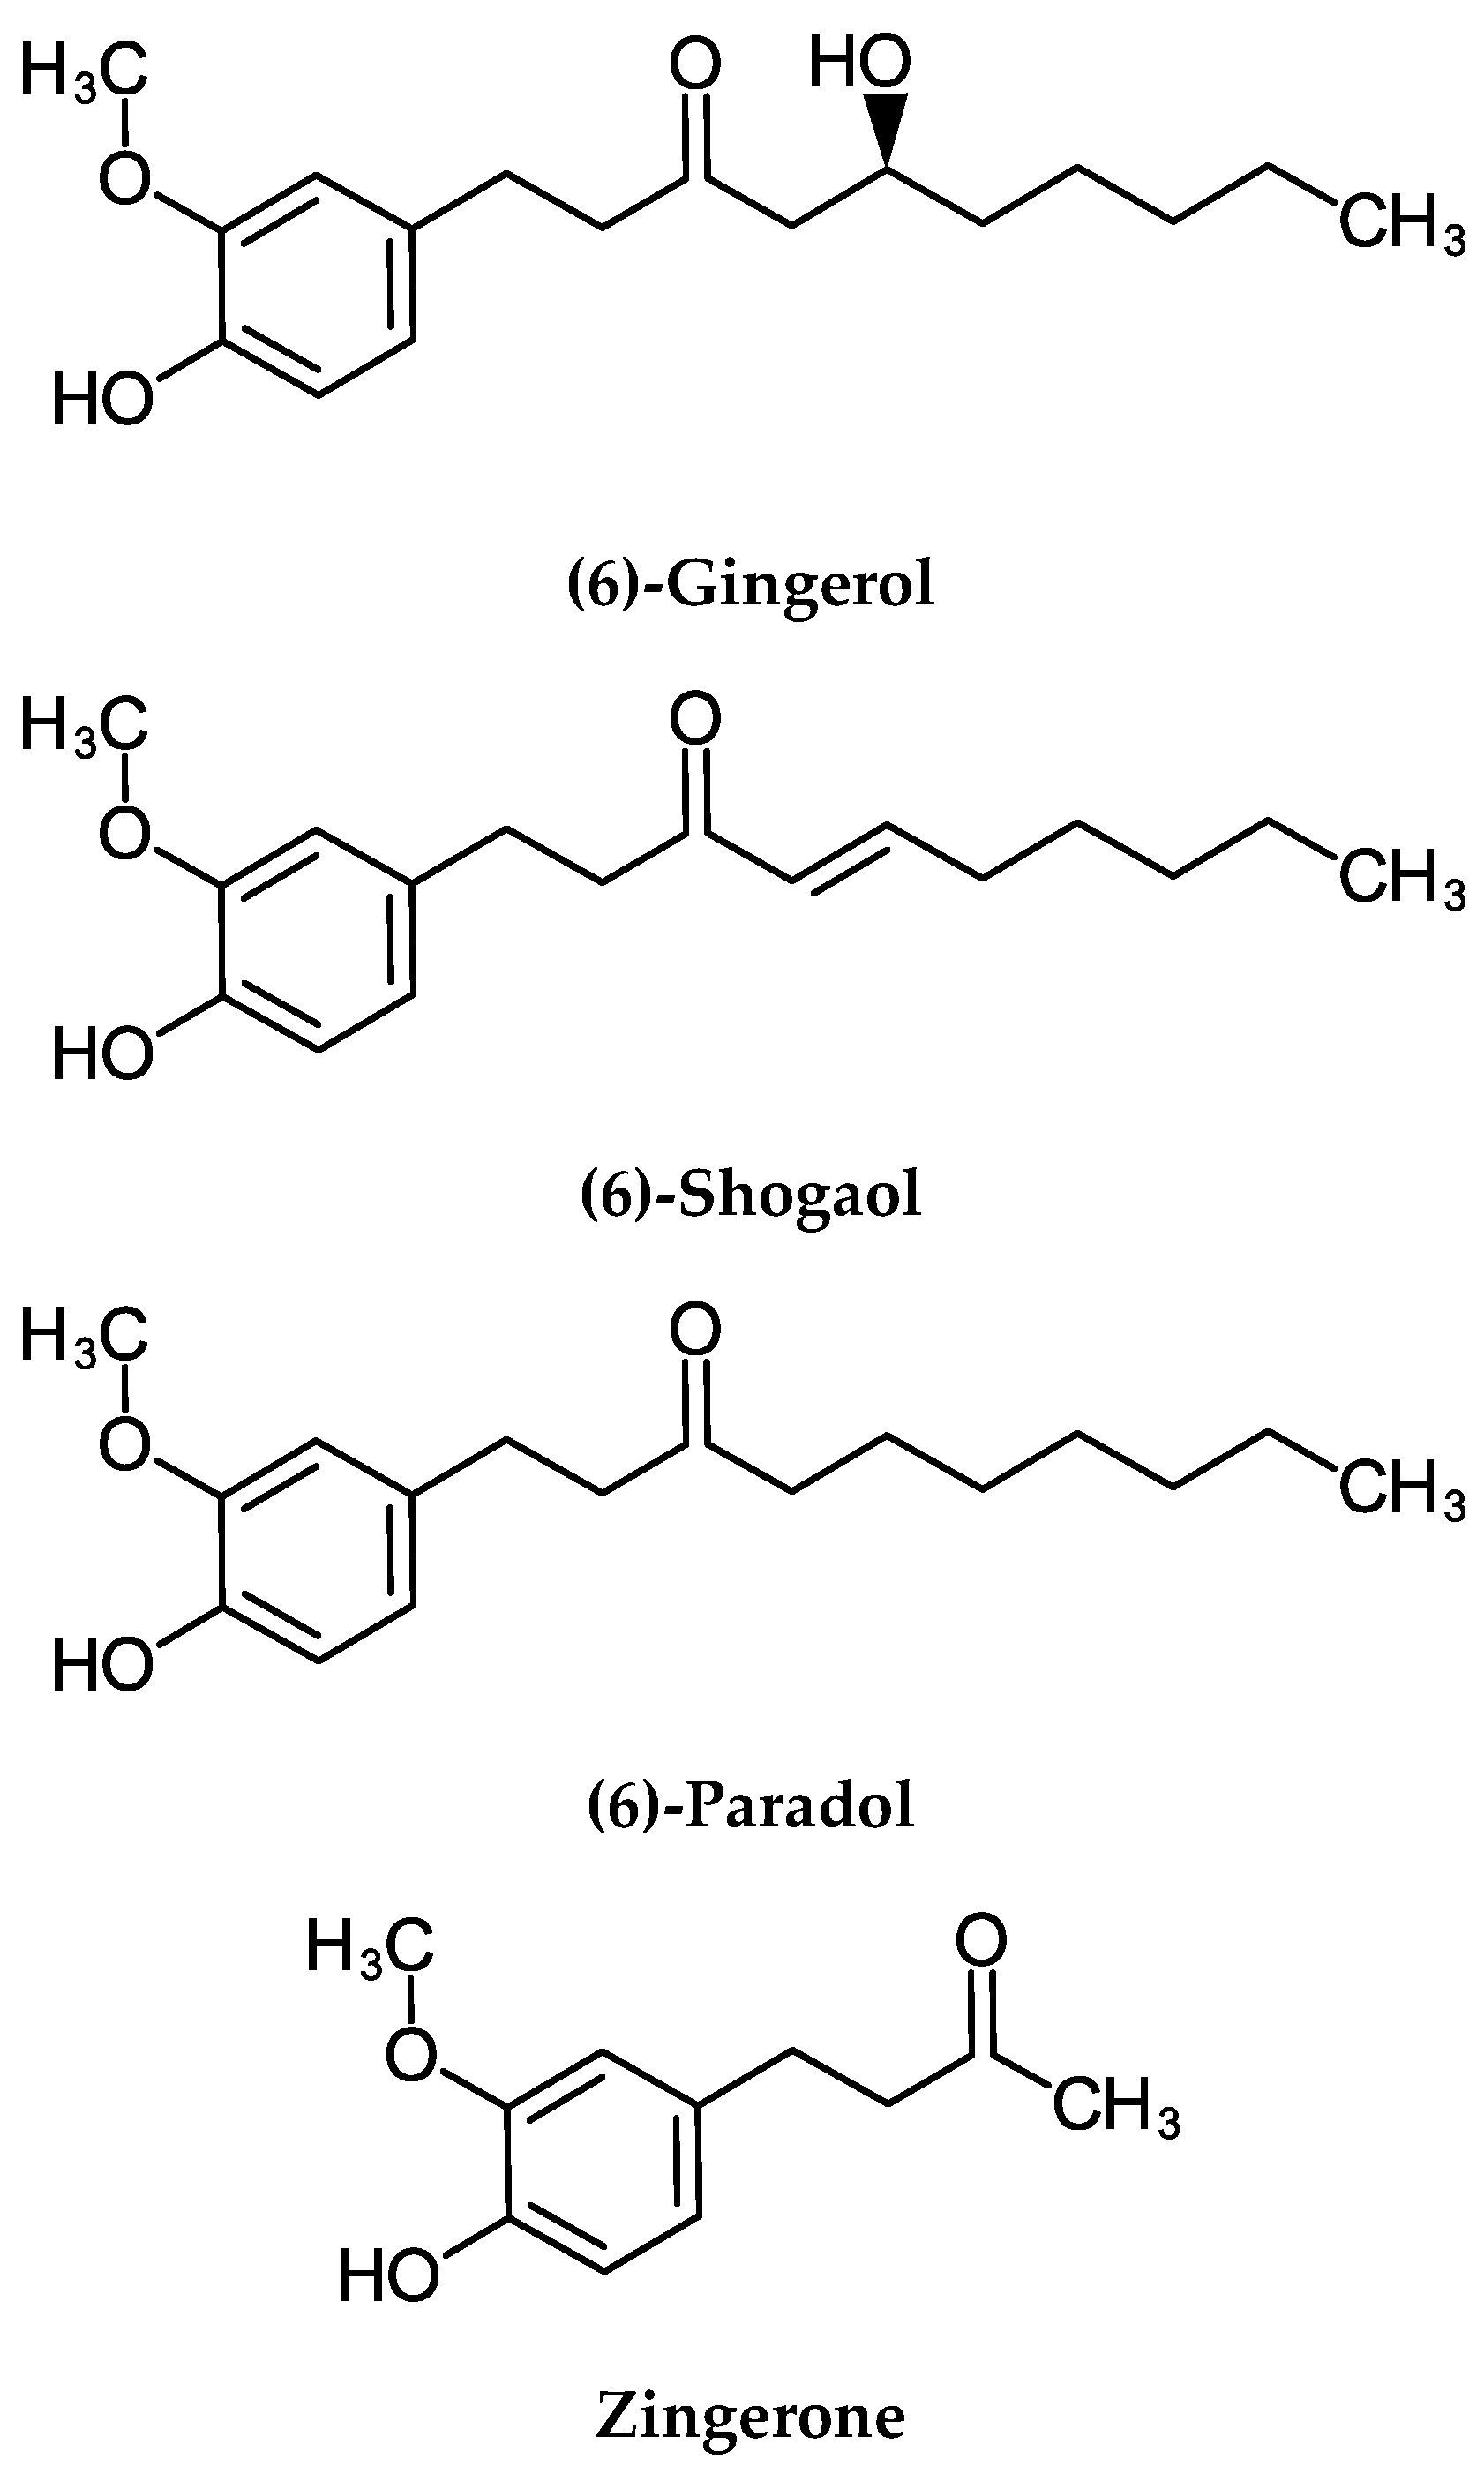 Molecules Free Full Text Gingers And Their Purified Components As Cancer Chemopreventative Agents Html